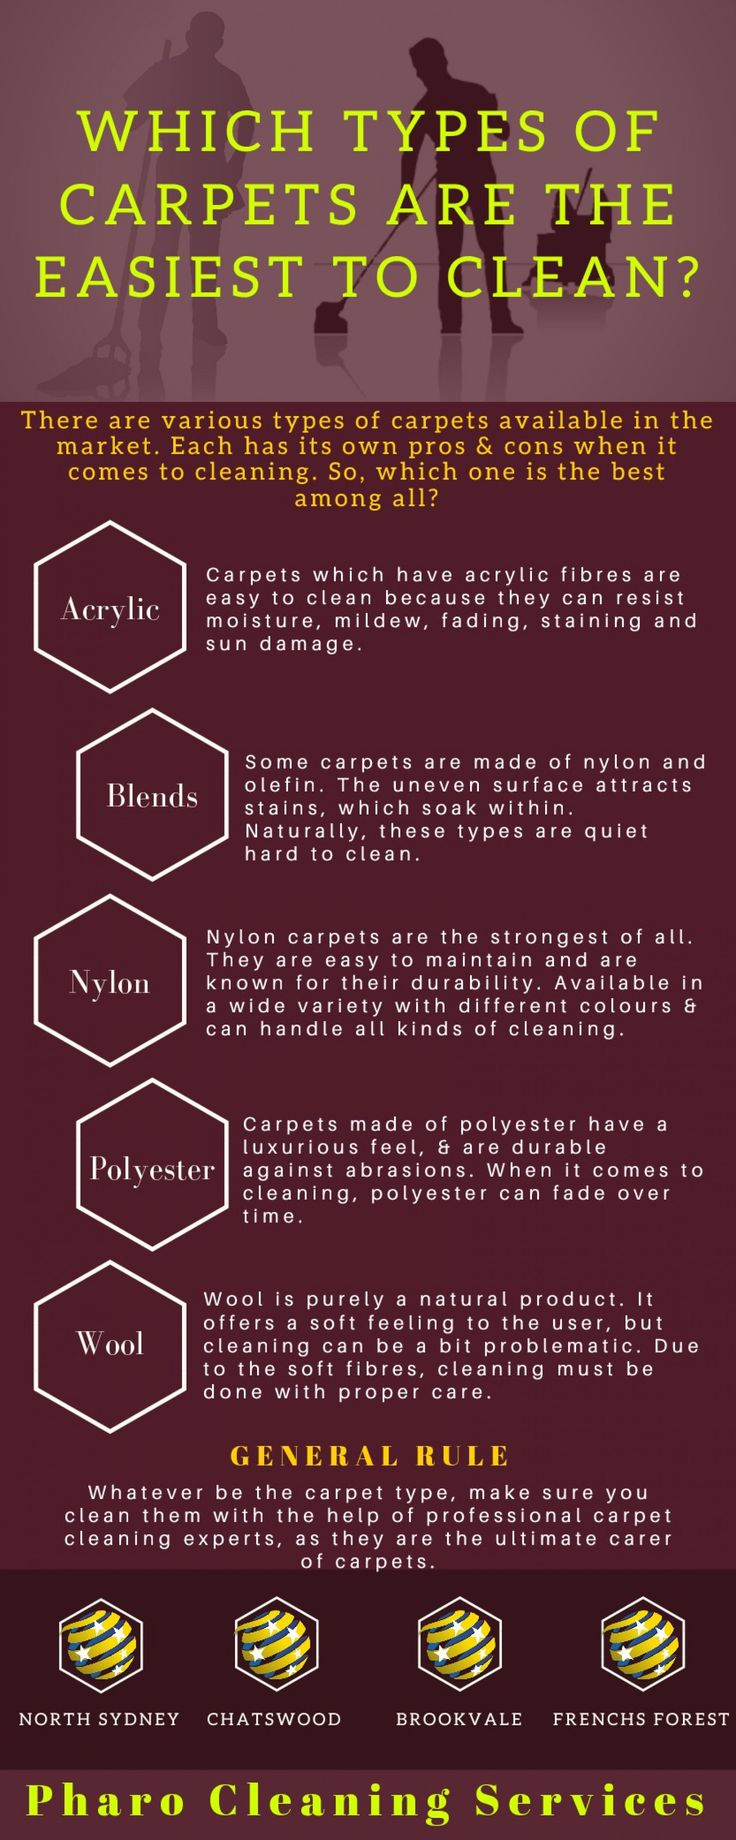 There are various types of carpets available in the market. Each has its own pros and cons when it comes to cleaning.